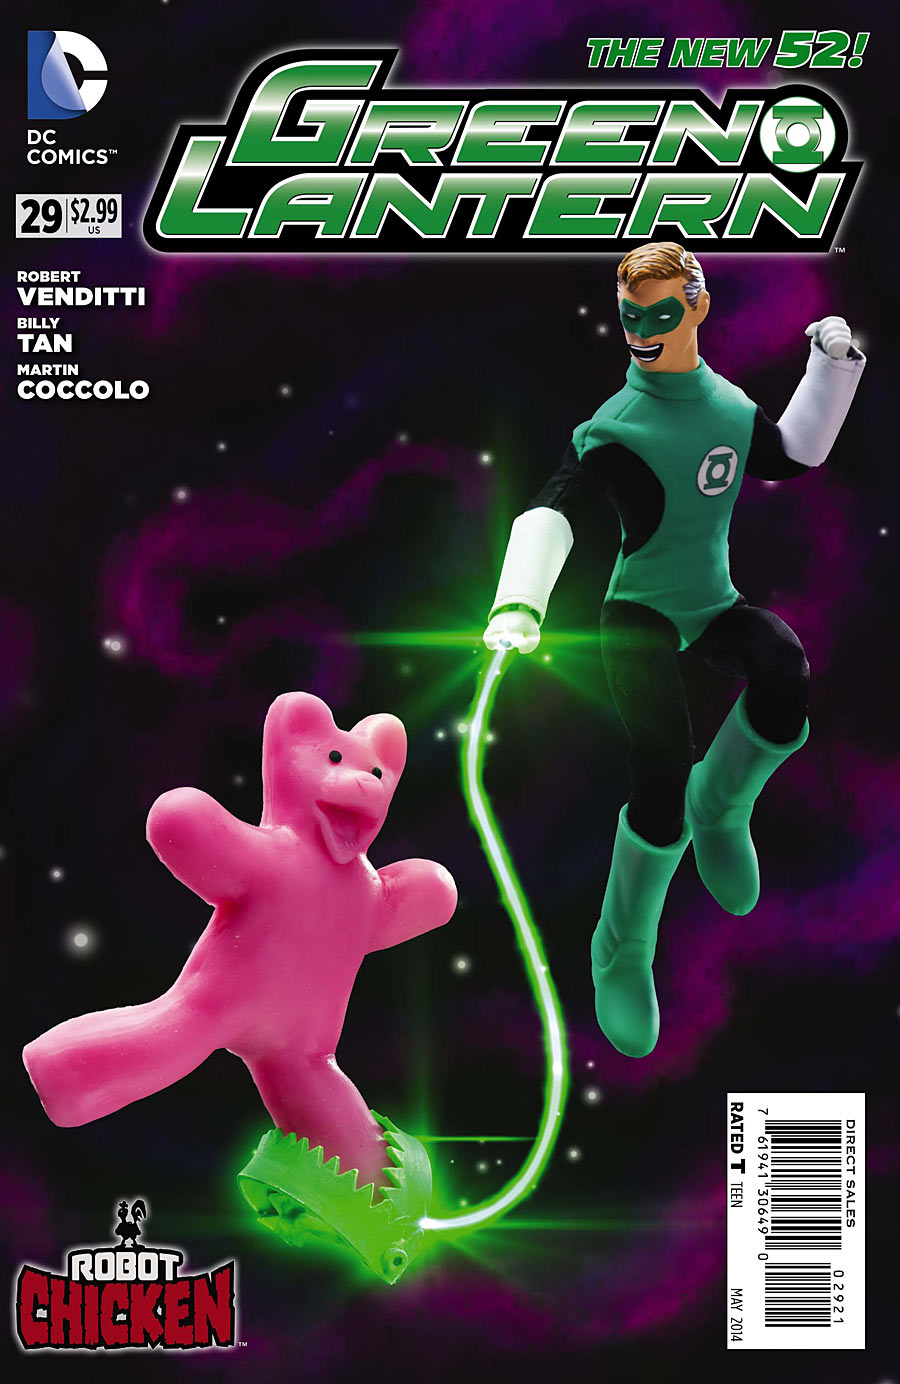 Green Lantern Vol 5 29 Cover 3 VENDITTI ON HAL JORDAN, WALLY WEST & VALIANT EVENT: ARMOR HUNTERS!